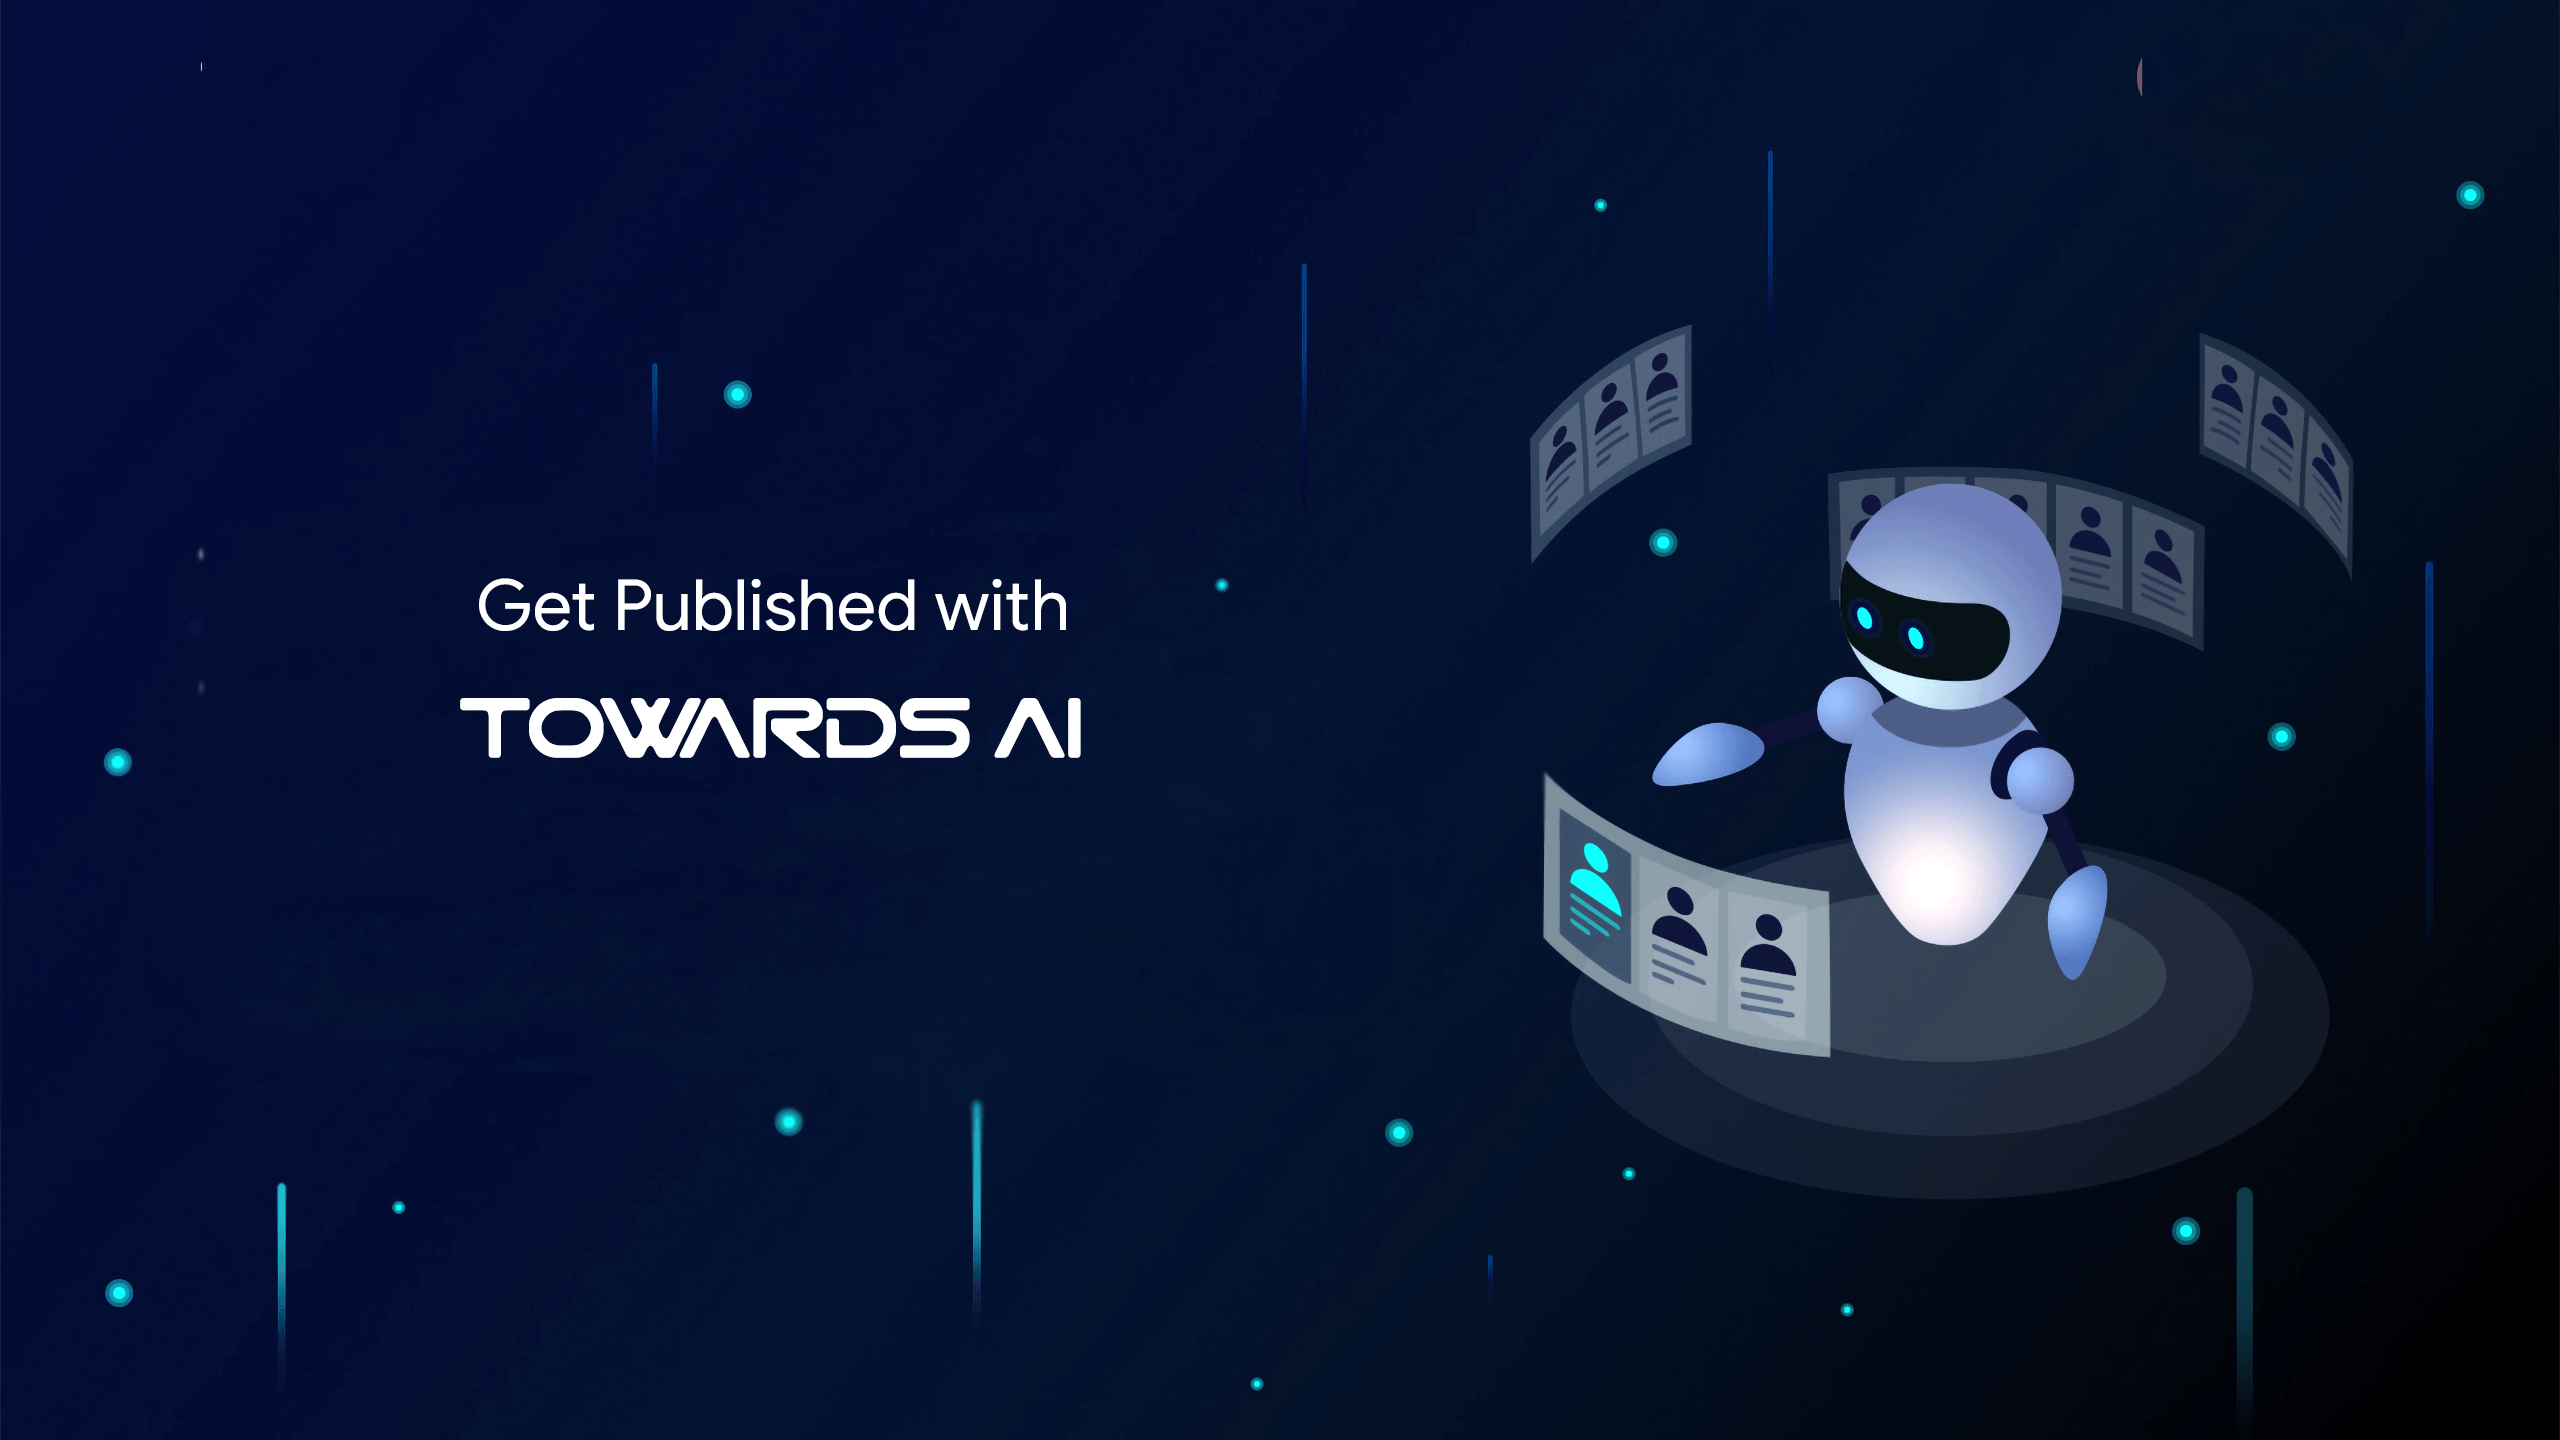 Get published with Towards AI → https://towardsai.net/contribute | Towards Artificial Intelligence